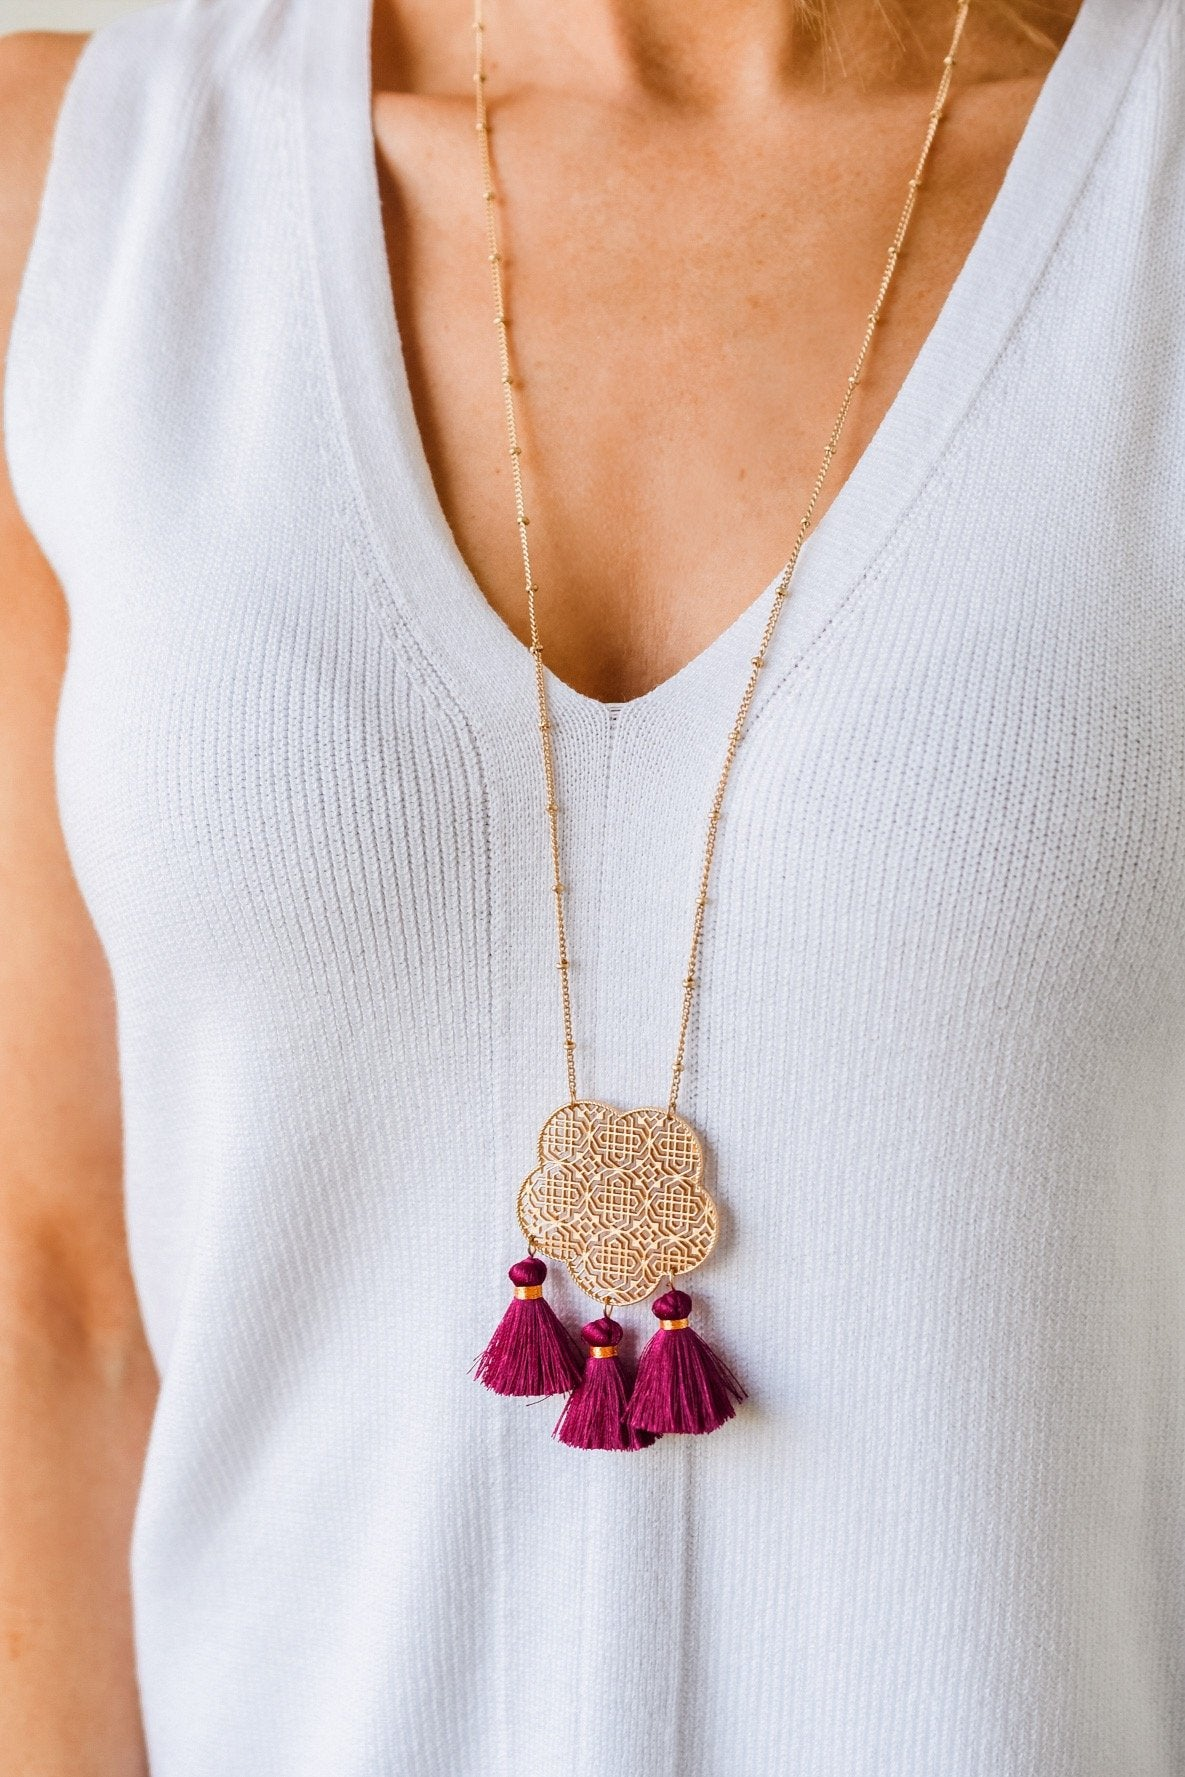 Charmingly Cheerful Pendant Necklace- Magenta